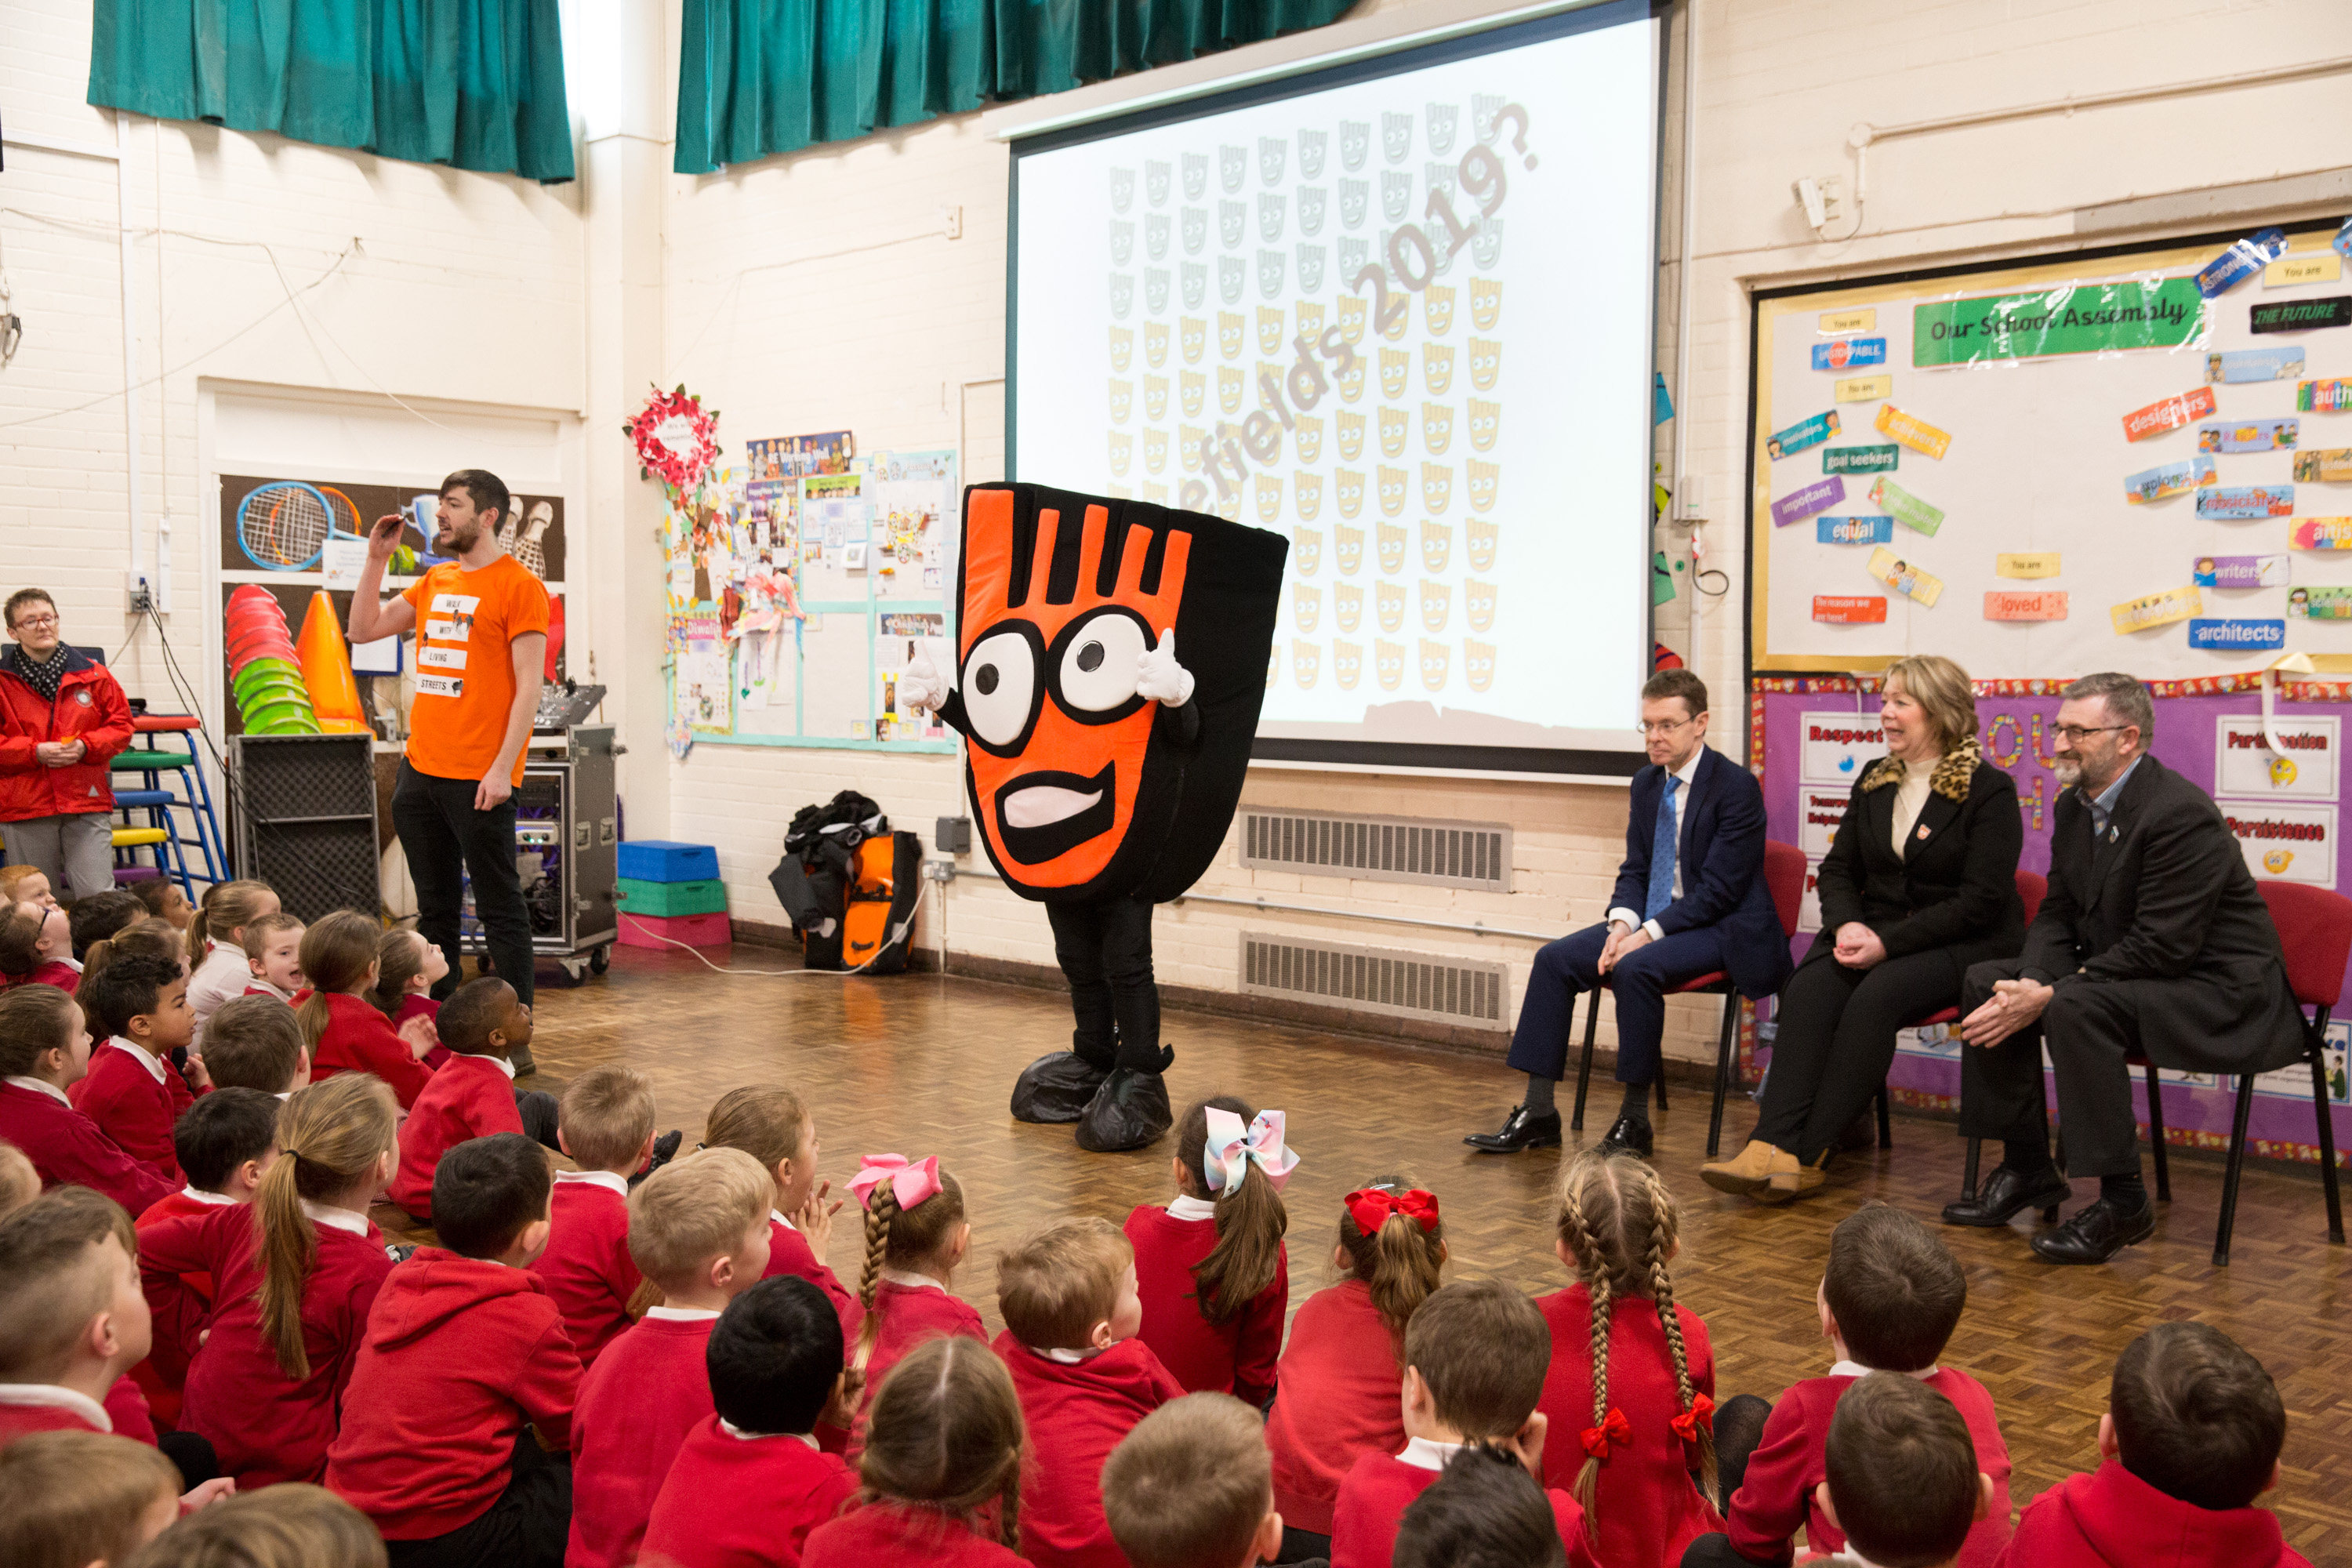 Pupils and Strider get moving in a special assembly